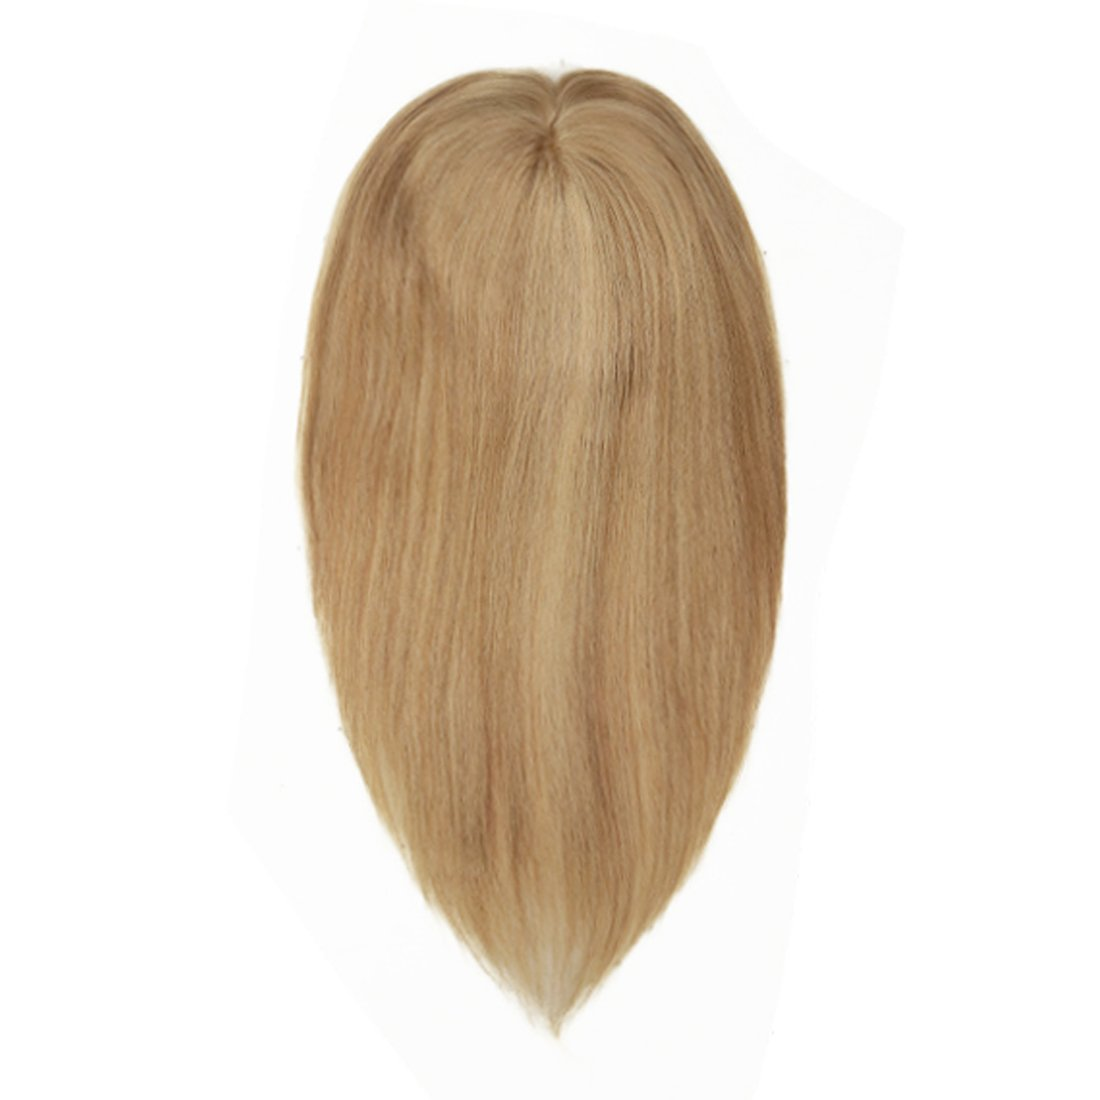 UniWigs 5.5''5.5'' Claire Virgin Remy Human Mono Hair Topper, Y-22 Blonde Color, Hair Pieces for Hair Loss or Thin Hair (12'') by uniwigs (Image #1)